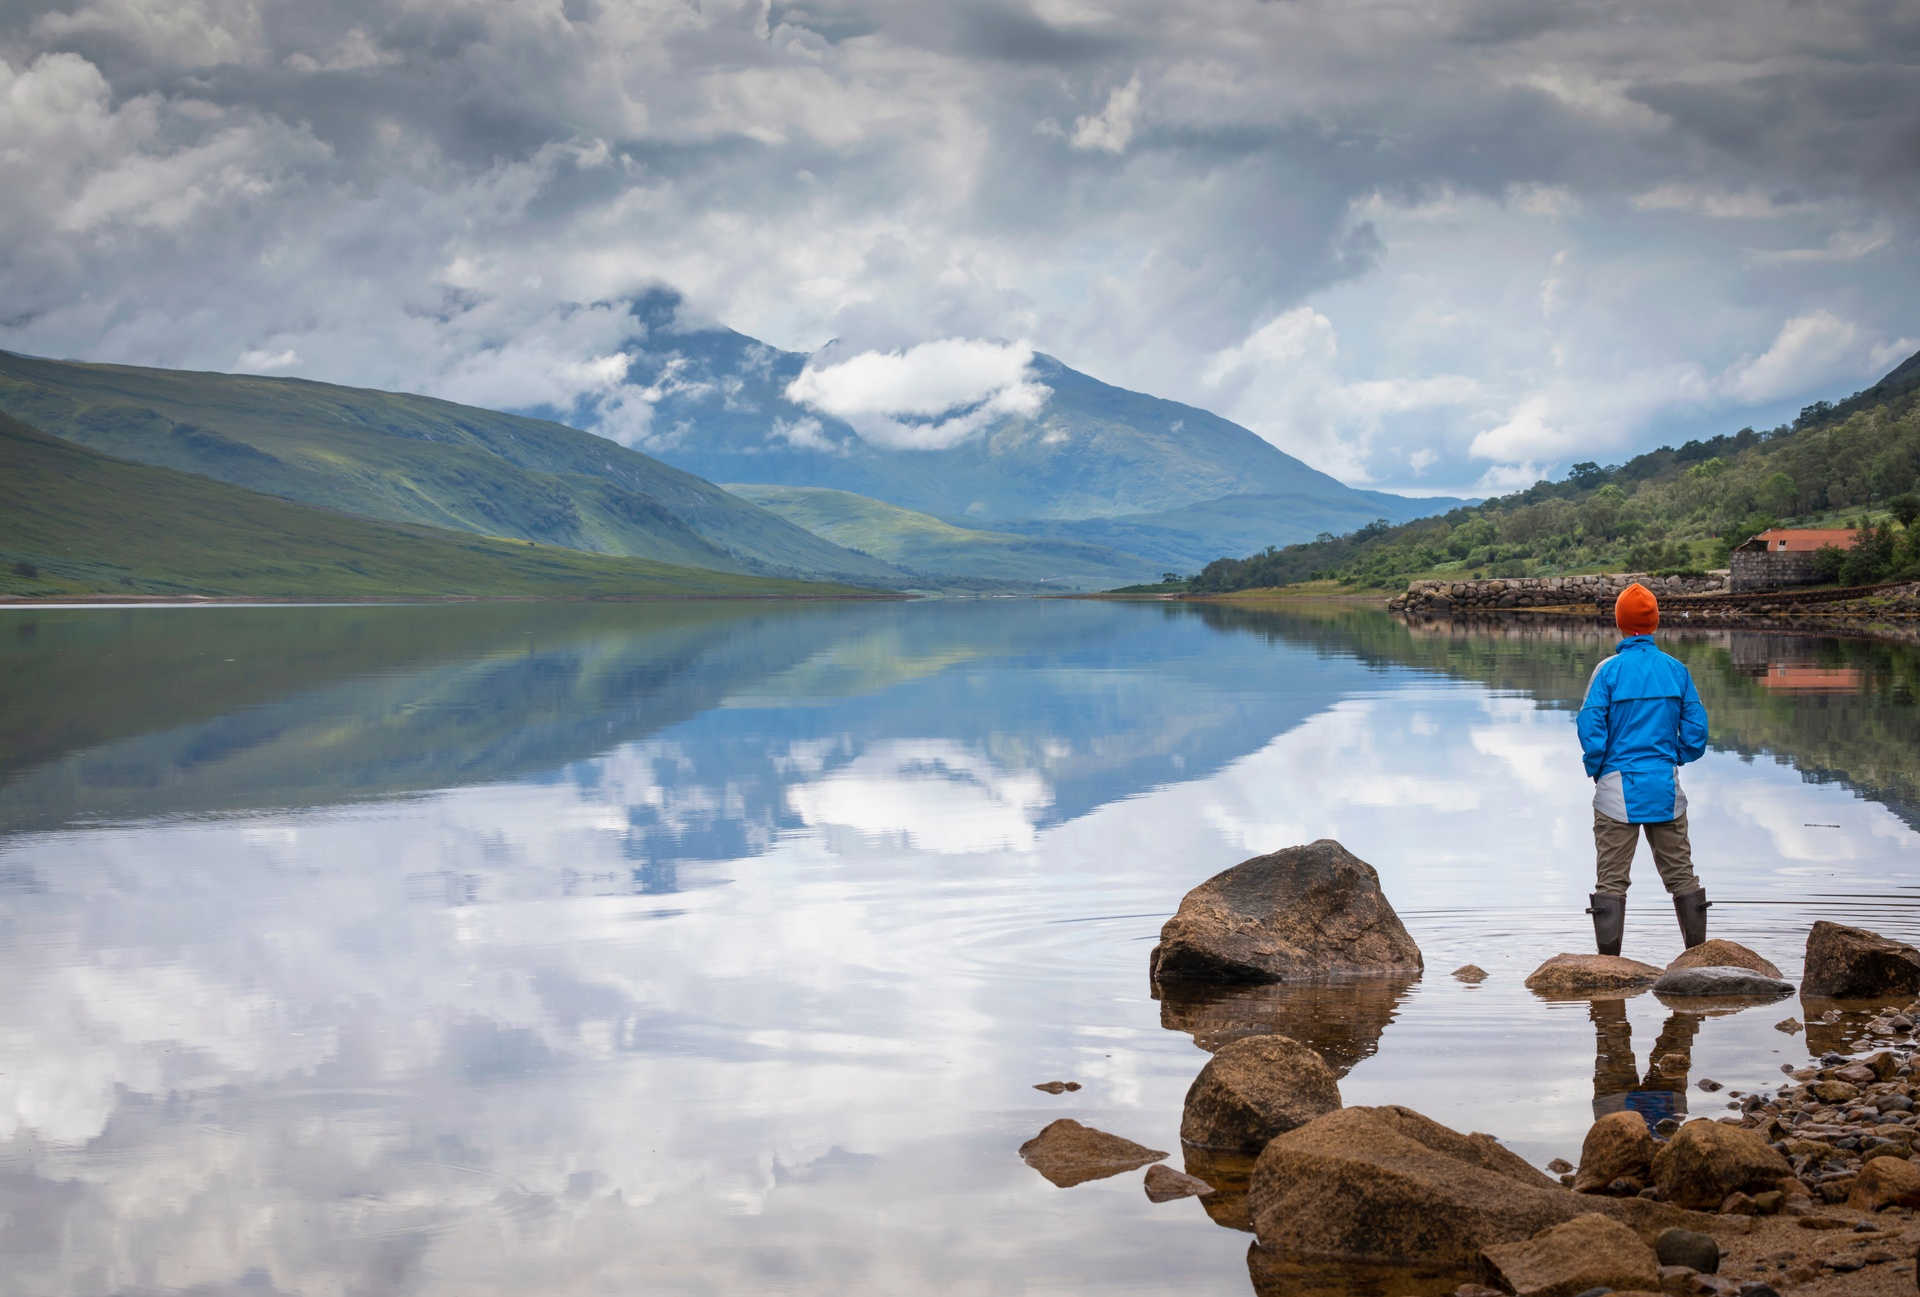 Looking over Loch Etive with Ben Cruachan in the distance